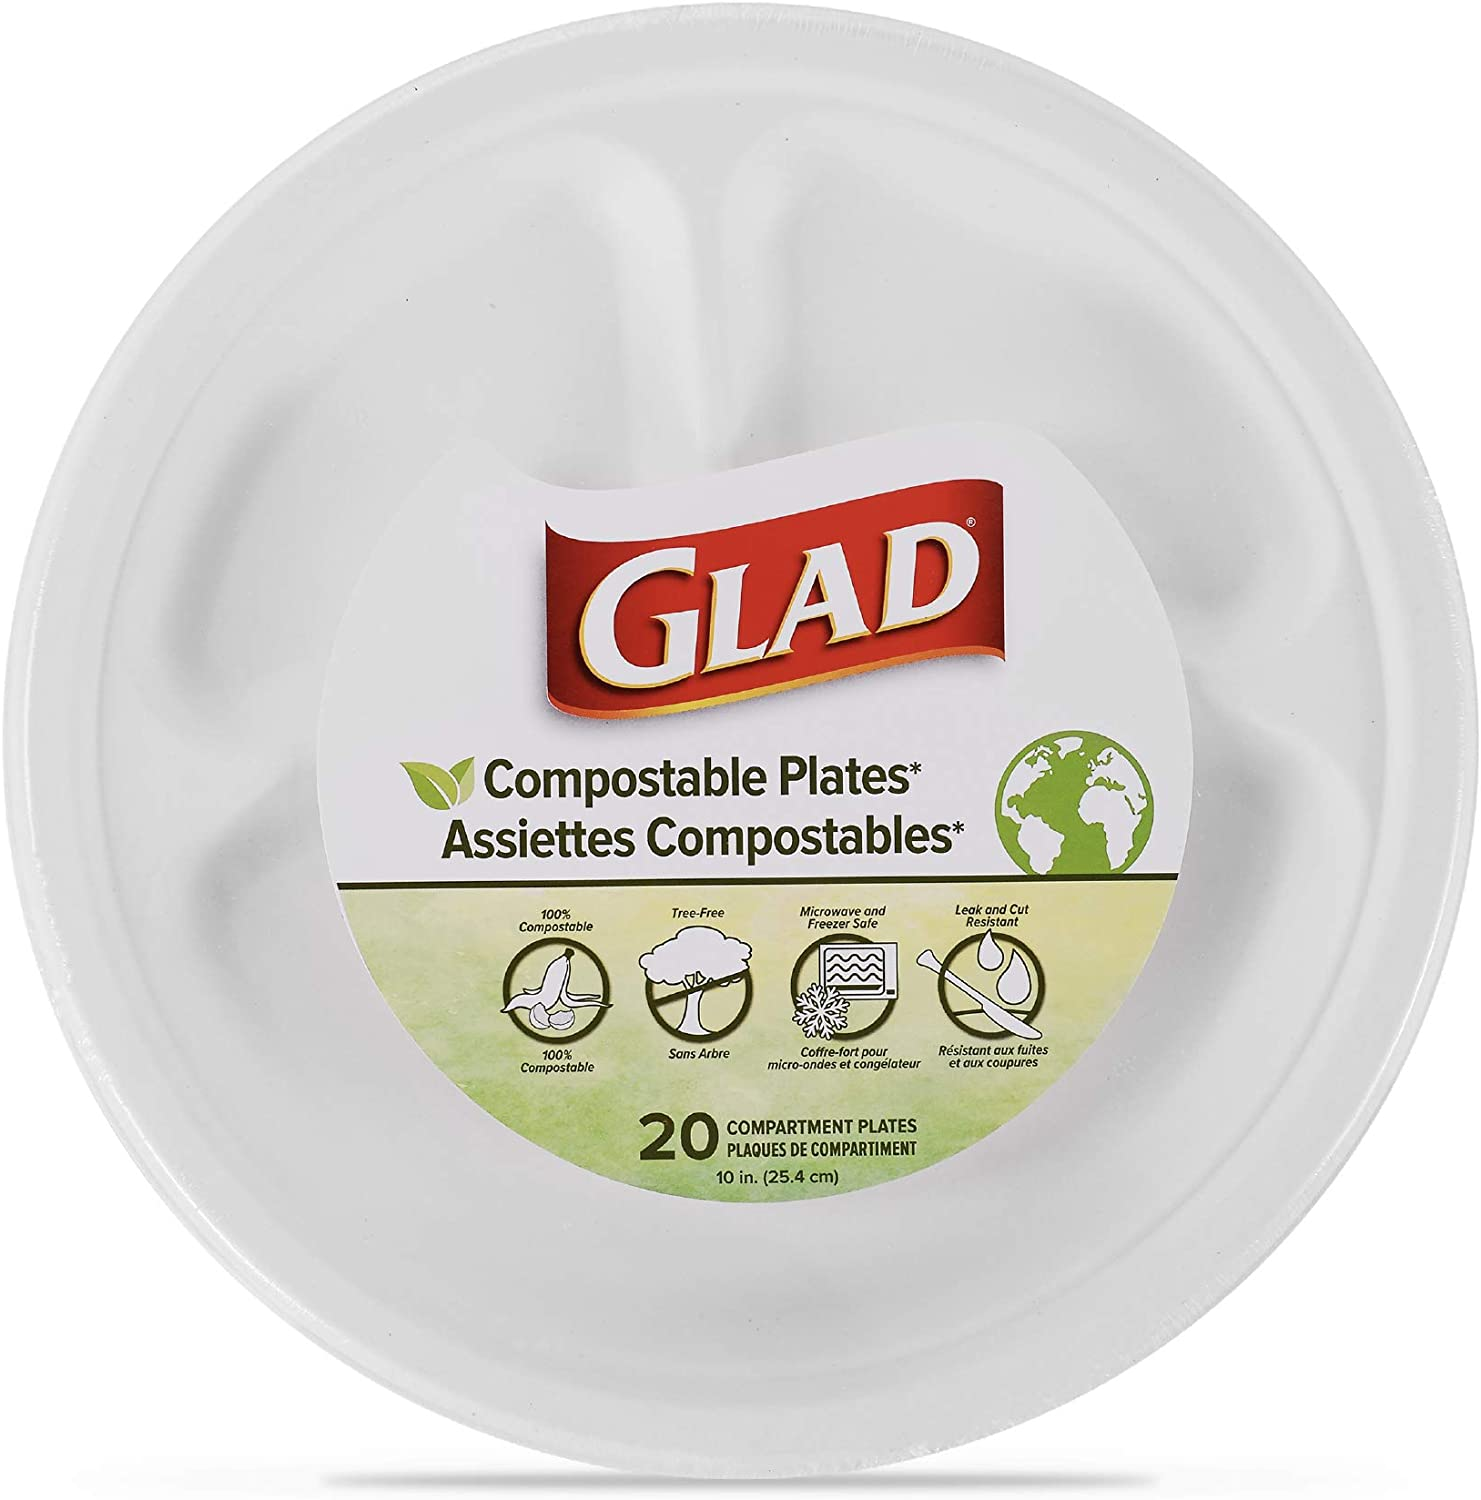 Compostable Compartment Plates | 10-Inch Divided Plates for Adults and Kids, 20 Count | Sugarcane Plates, Microwavable and Freezer Safe, Leak & Cut-Resistant Disposable Plates